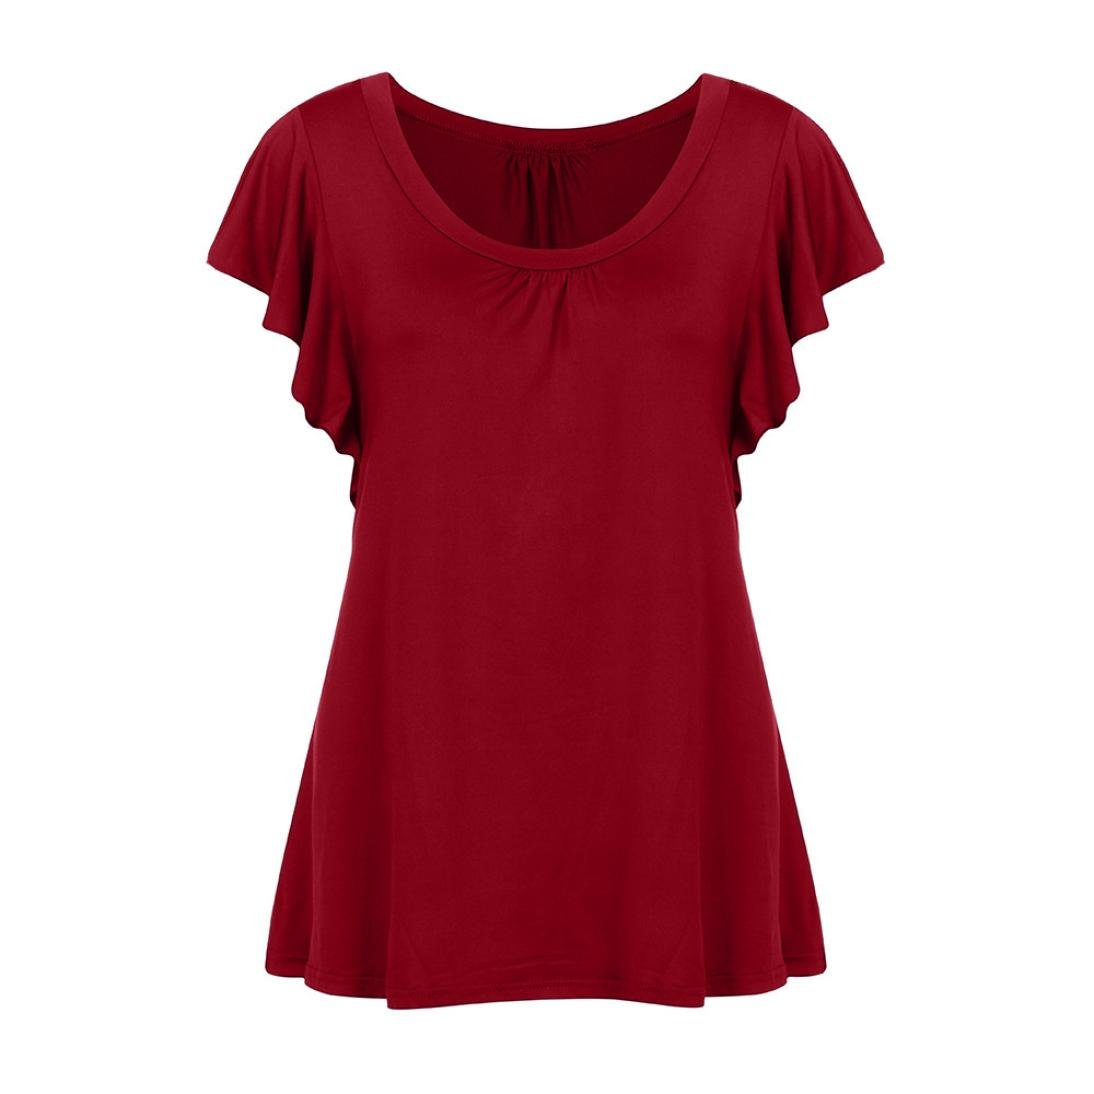 Amazon.com: T Shirts for Womens, FORUU Short Sleeve Solid Pleated Casual Flowy Tunic Top Tee: Clothing